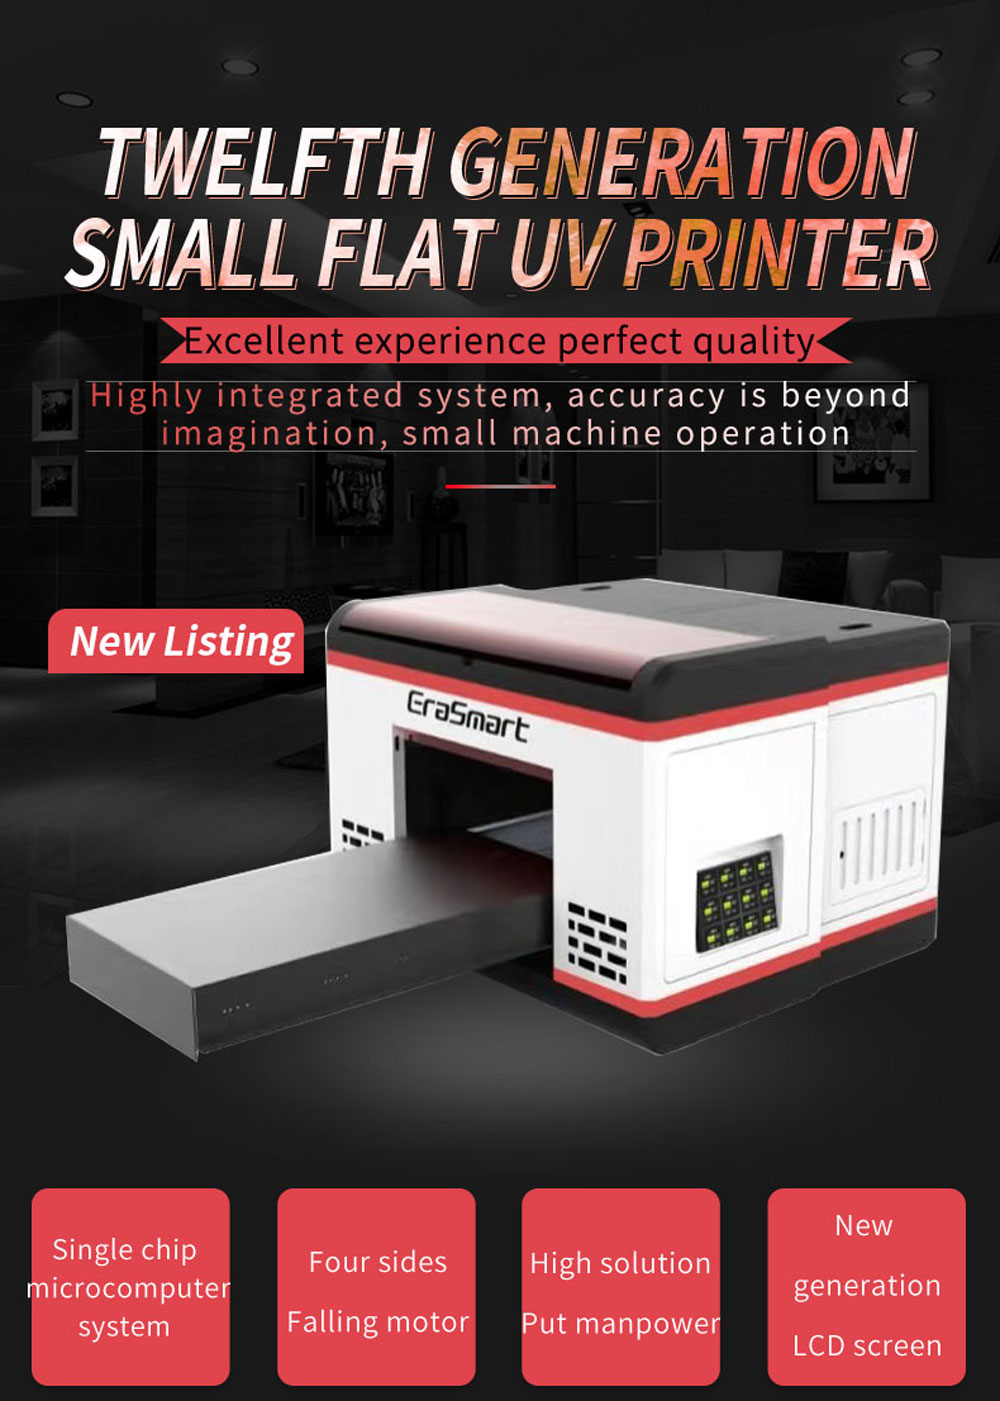 new-uv-printer-1